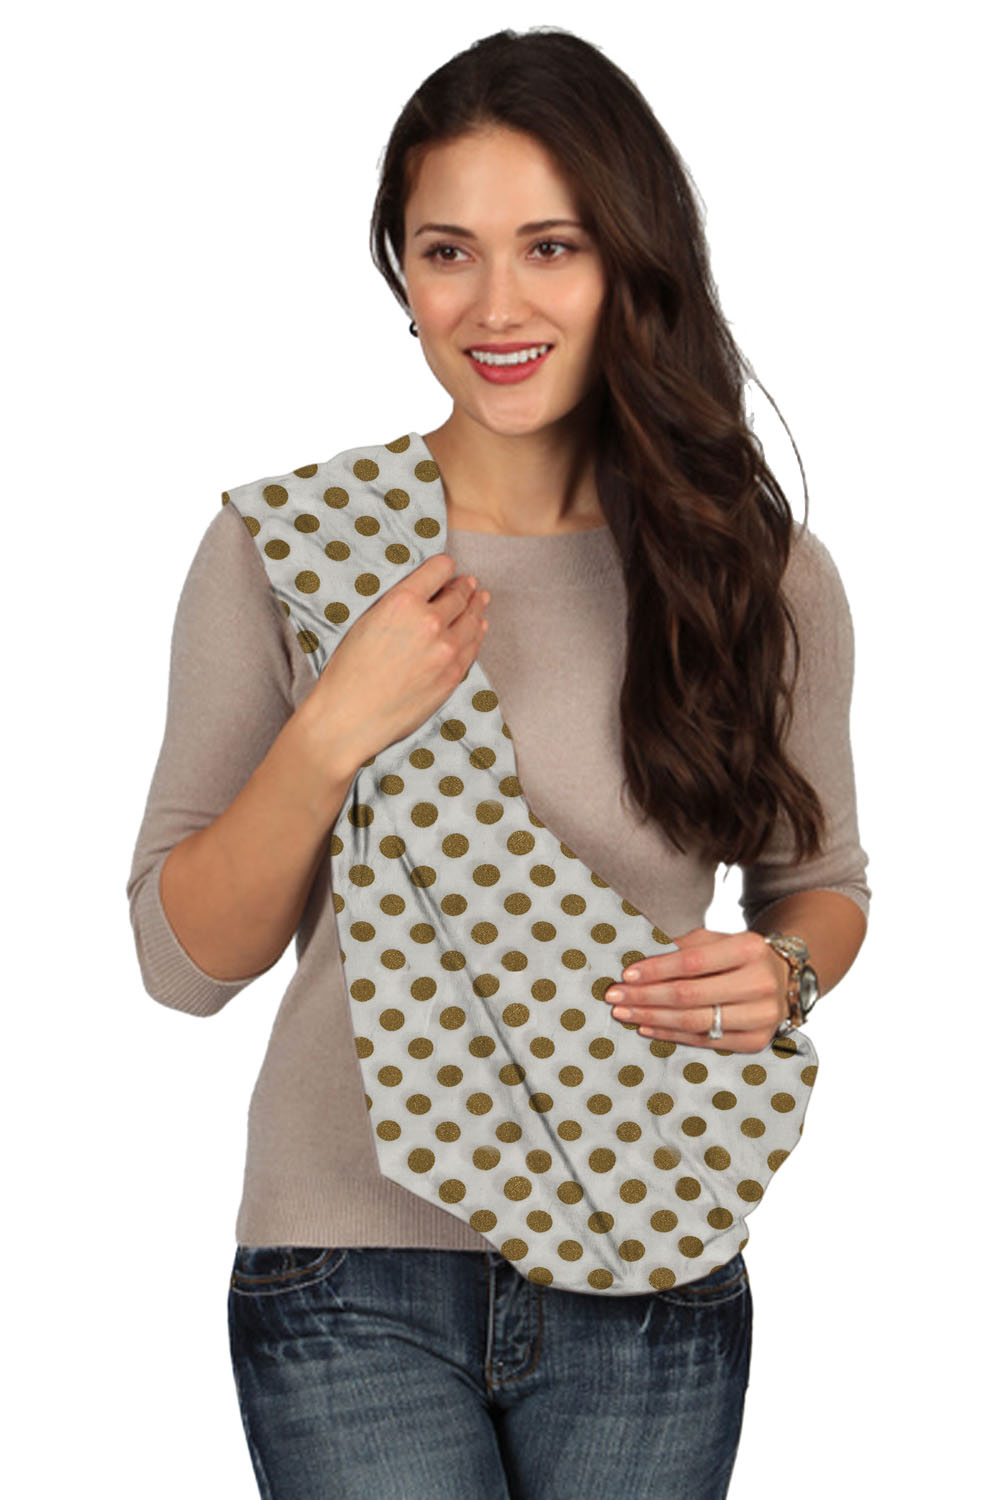 Karma Baby White with Golden Dot Baby Sling - Extra Large